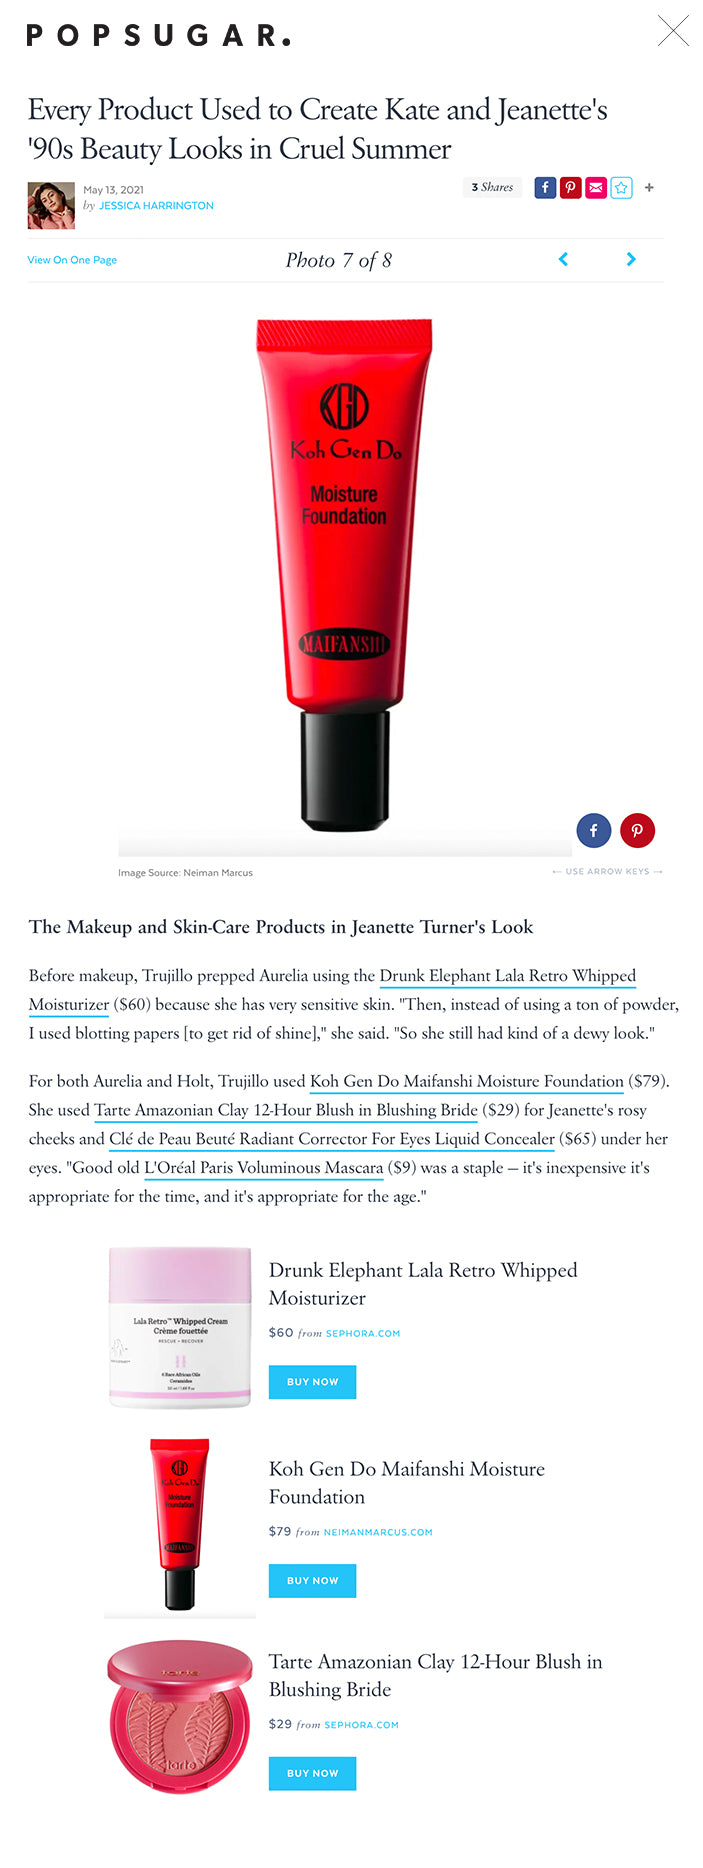 """Every Product Used to Create Kate and Jeanette's '90s Beauty Looks in Cruel Summer  May 13, 2021 by JESSICA HARRINGTON 3 Shares      View On One PagePhoto 7 of 8     The Makeup and Skin-Care Products in Jeanette Turner's Look ← USE ARROW KEYS → Image Source: Neiman Marcus The Makeup and Skin-Care Products in Jeanette Turner's Look Before makeup, Trujillo prepped Aurelia using the Drunk Elephant Lala Retro Whipped Moisturizer ($60) because she has very sensitive skin. """"Then, instead of using a ton of powder, I used blotting papers [to get rid of shine],"""" she said. """"So she still had kind of a dewy look.""""  For both Aurelia and Holt, Trujillo used Koh Gen Do Maifanshi Moisture Foundation ($79). She used Tarte Amazonian Clay 12-Hour Blush in Blushing Bride ($29) for Jeanette's rosy cheeks and Clé de Peau Beuté Radiant Corrector For Eyes Liquid Concealer ($65) under her eyes. """"Good old L'Oréal Paris Voluminous Mascara ($9) was a staple — it's inexpensive it's appropriate for the time, and it's appropriate for the age.""""  Drunk Elephant Lala Retro Whipped Moisturizer Drunk Elephant Lala Retro Whipped Moisturizer $60 from SEPHORA.COM BUY NOW The Makeup and Skin-Care Products in Jeanette Turner's Look Koh Gen Do Maifanshi Moisture Foundation $79 from NEIMANMARCUS.COM BUY NOW Tarte Amazonian Clay 12-Hour Blush in Blushing Bride Tarte Amazonian Clay 12-Hour Blush in Blushing Bride $29 from SEPHORA.COM BUY NOW Clé De Peau Beuté Radiant Corrector for Eyes Liquid Concealer Clé De Peau Beuté Radiant Corrector for Eyes Liquid Concealer $65 from NORDSTROM.COM BUY NOW L'Oréal Paris Voluminous Original Mascara L'Oréal Paris Voluminous Original Mascara $9 from ULTA.COM BUY NOW"""